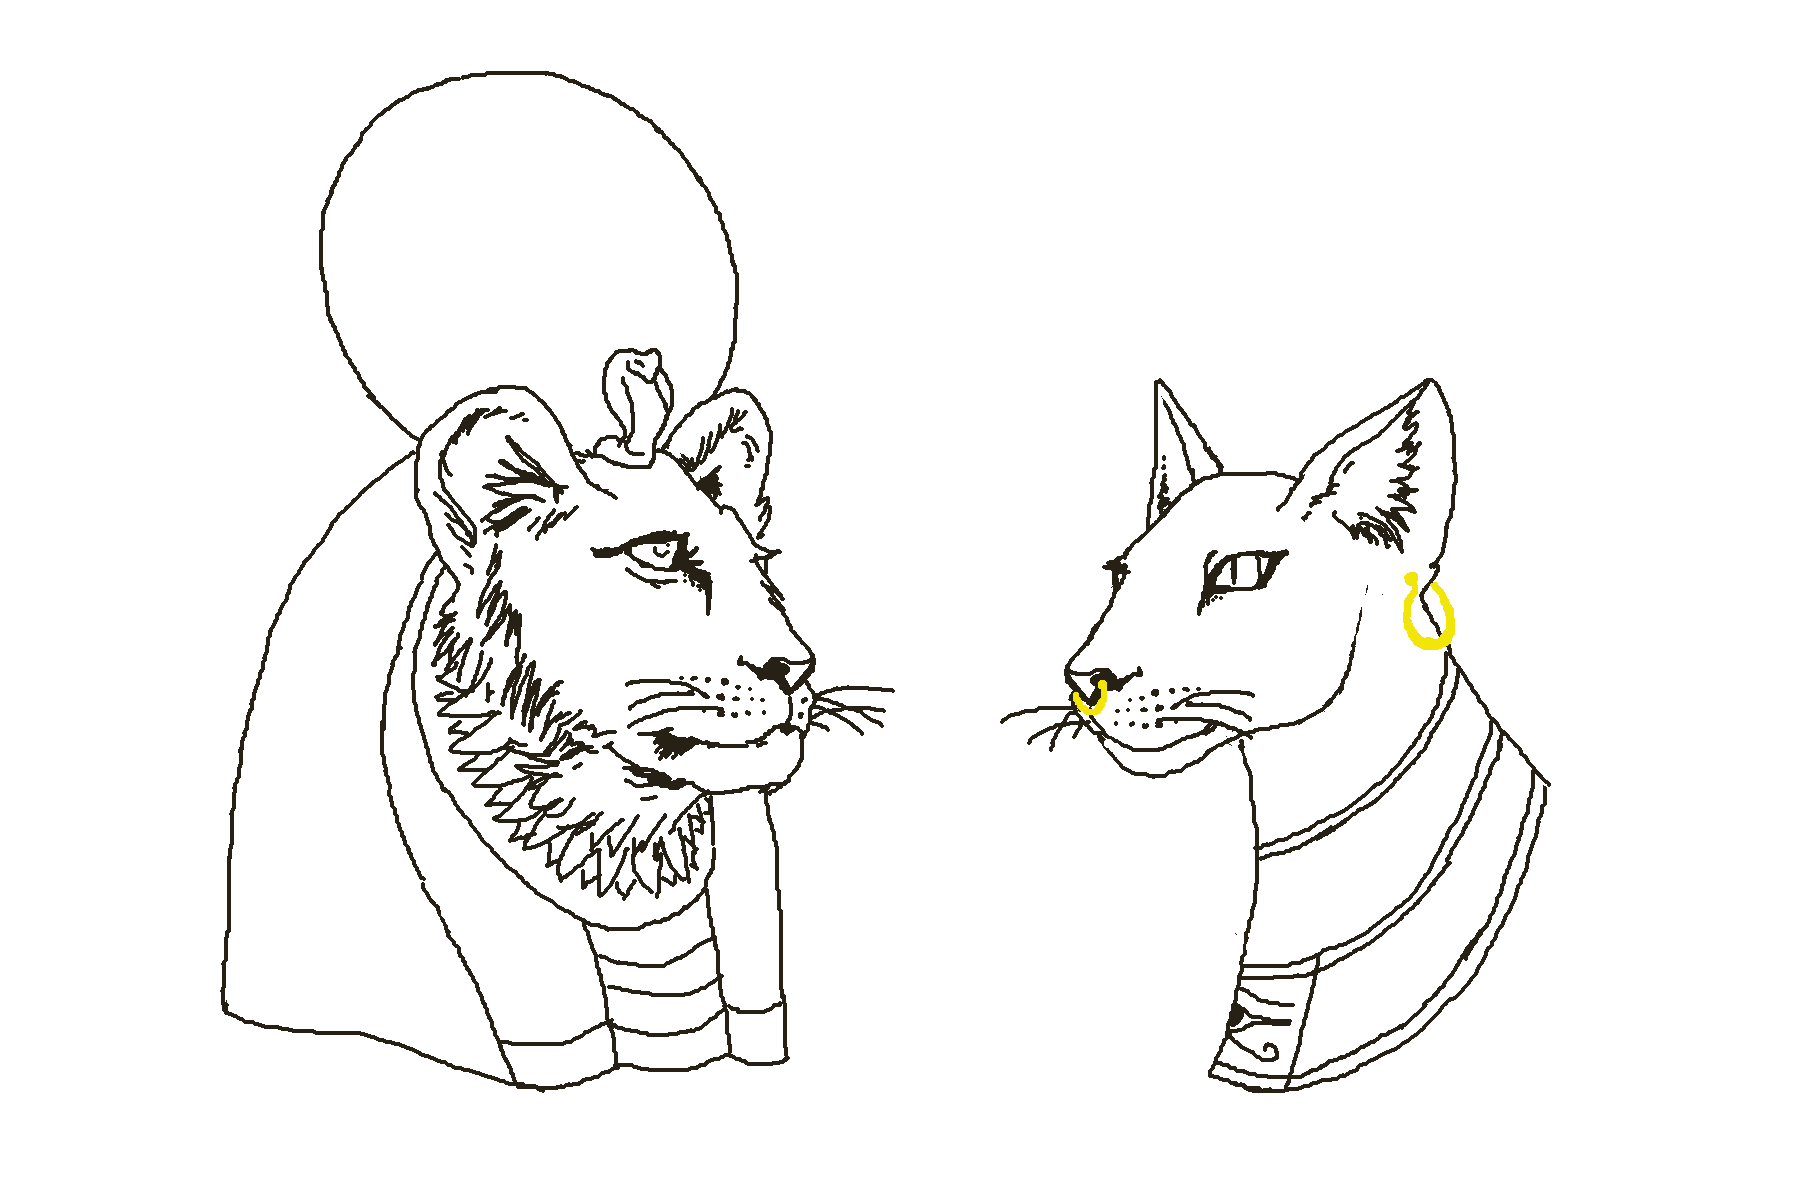 Bastet drawing. Two busts one of